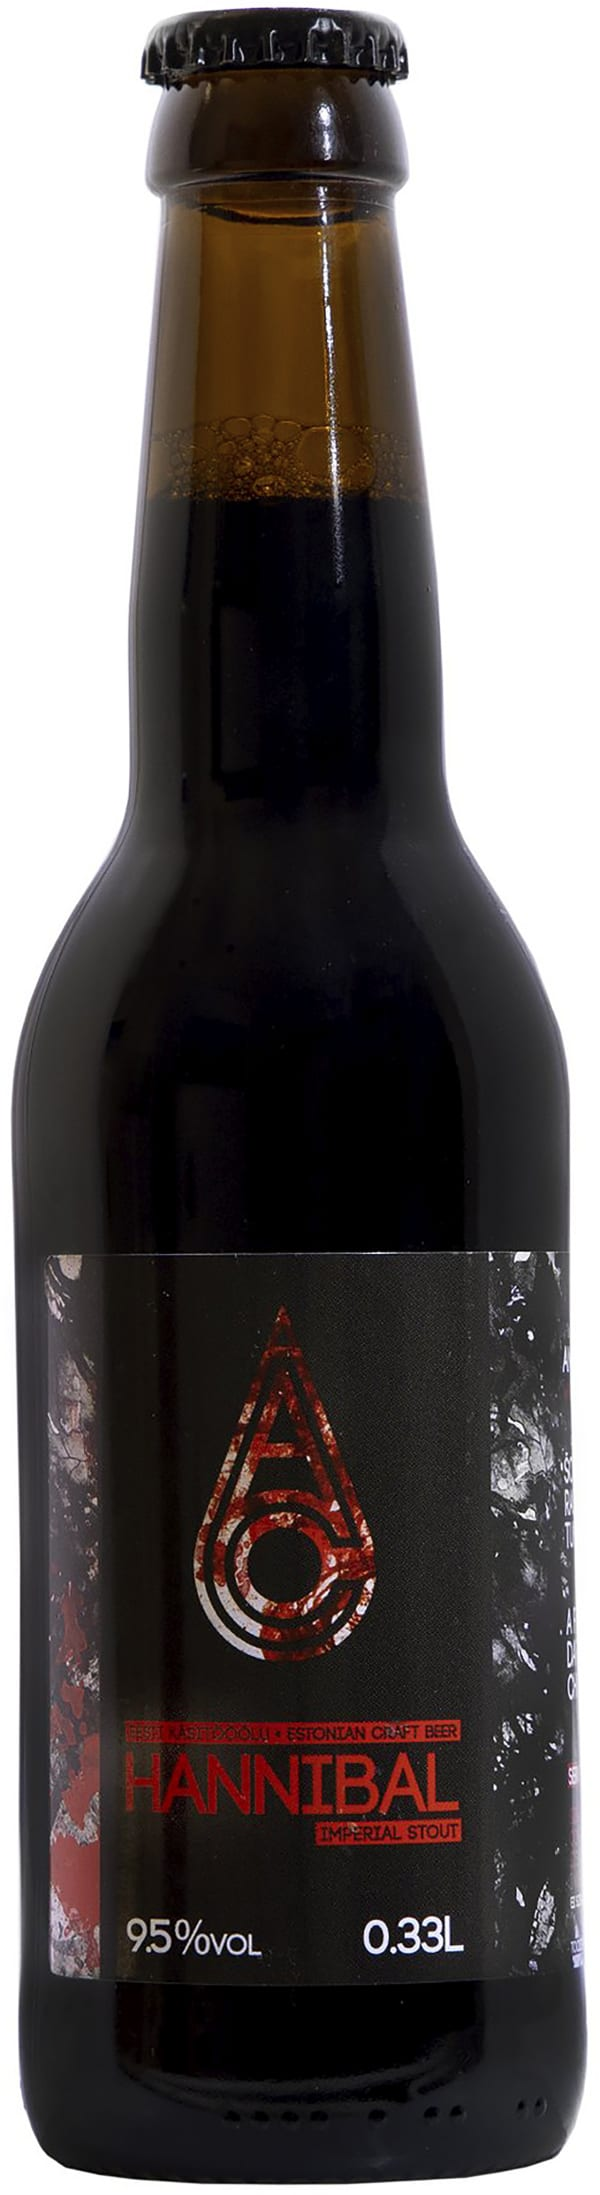 Anderson Hannibal Imperial Stout